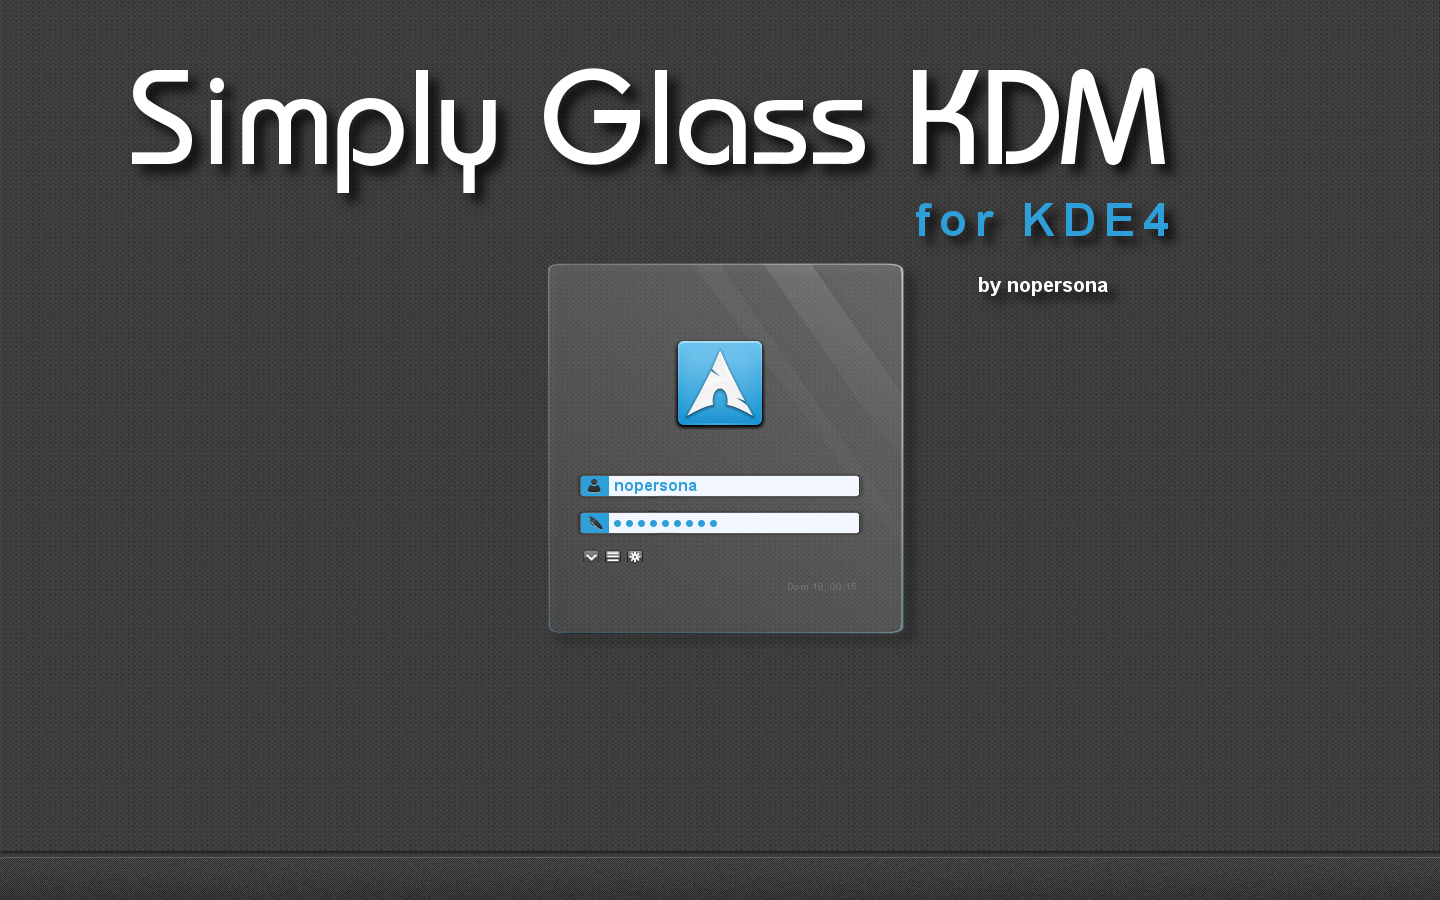 Simply Glass KDM by nopersona